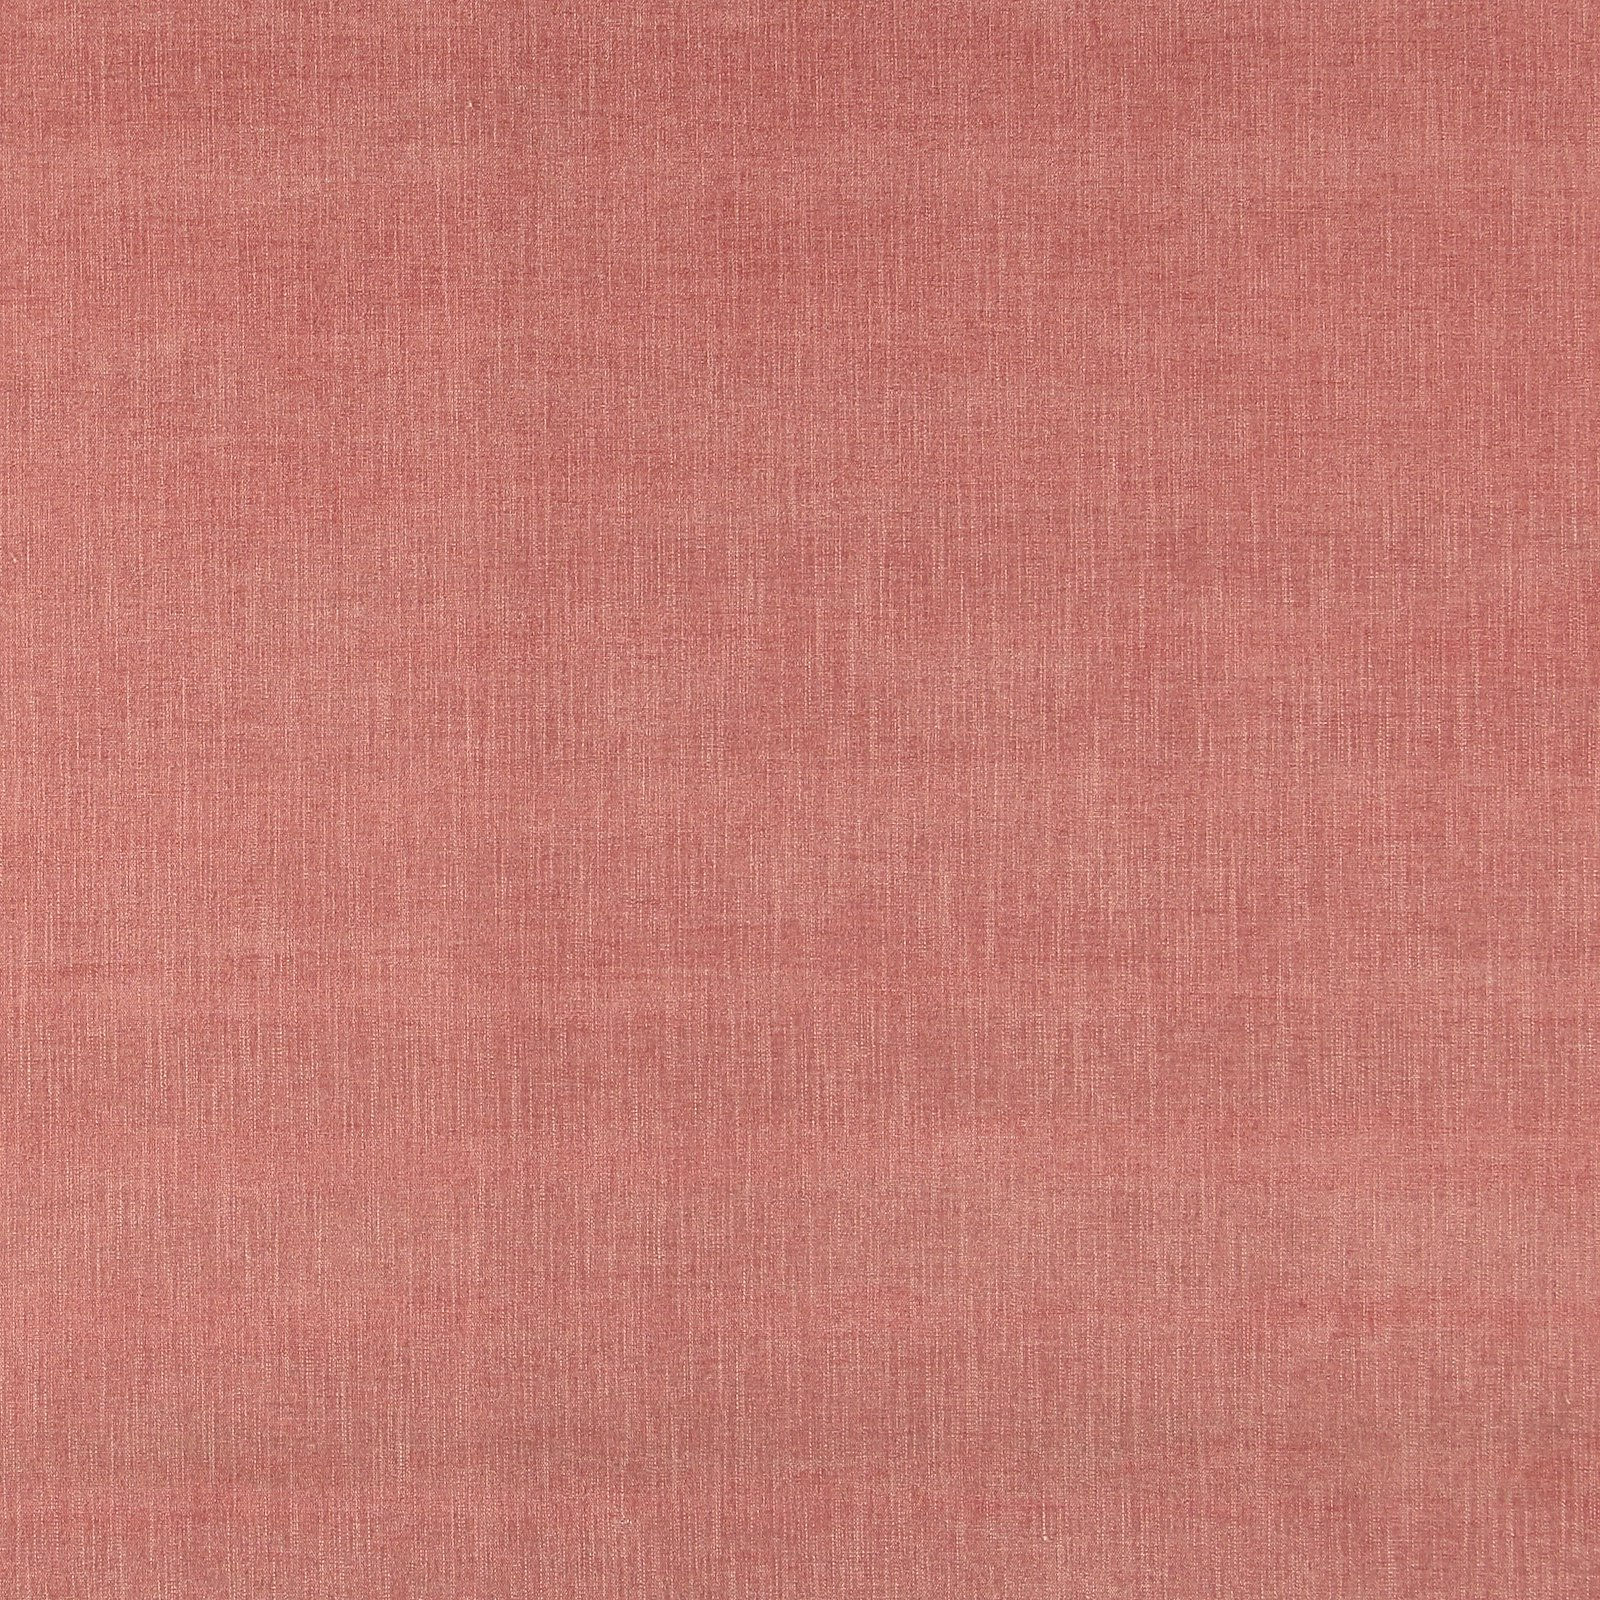 Upholstery chenille structure dark rose 824039_pack_sp